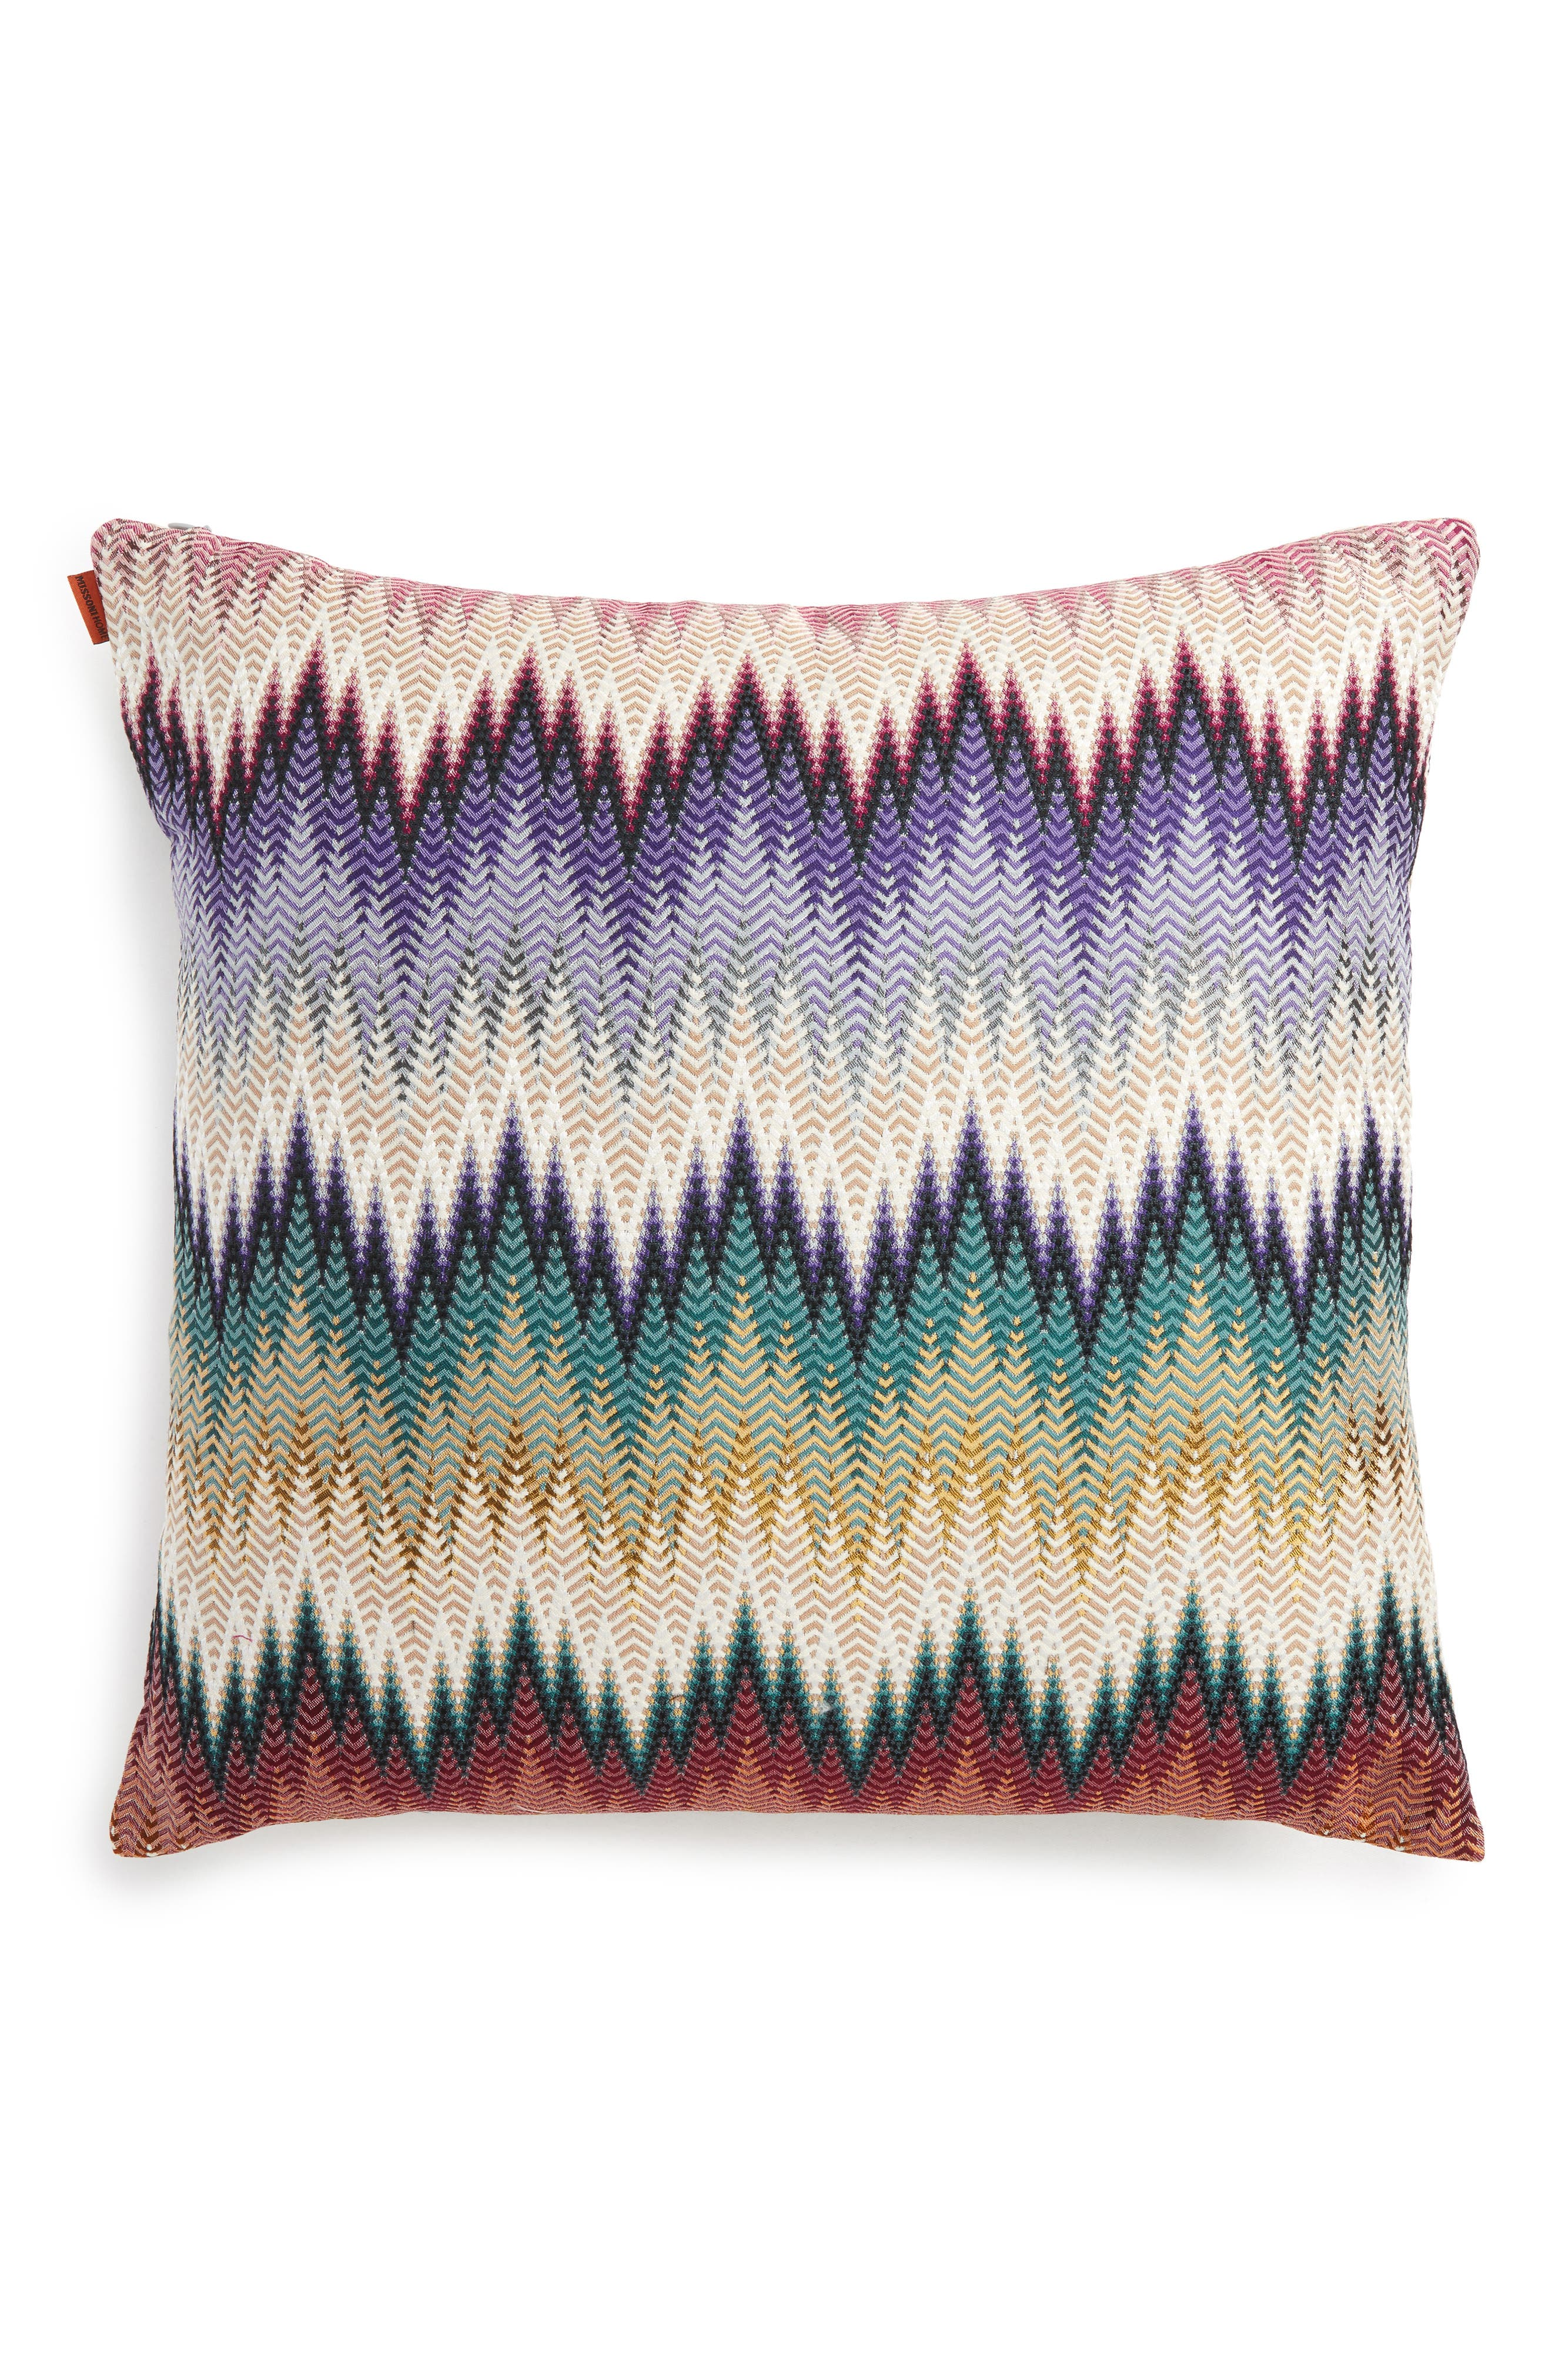 Phrae Accent Pillow,                         Main,                         color, MULTI COLOR